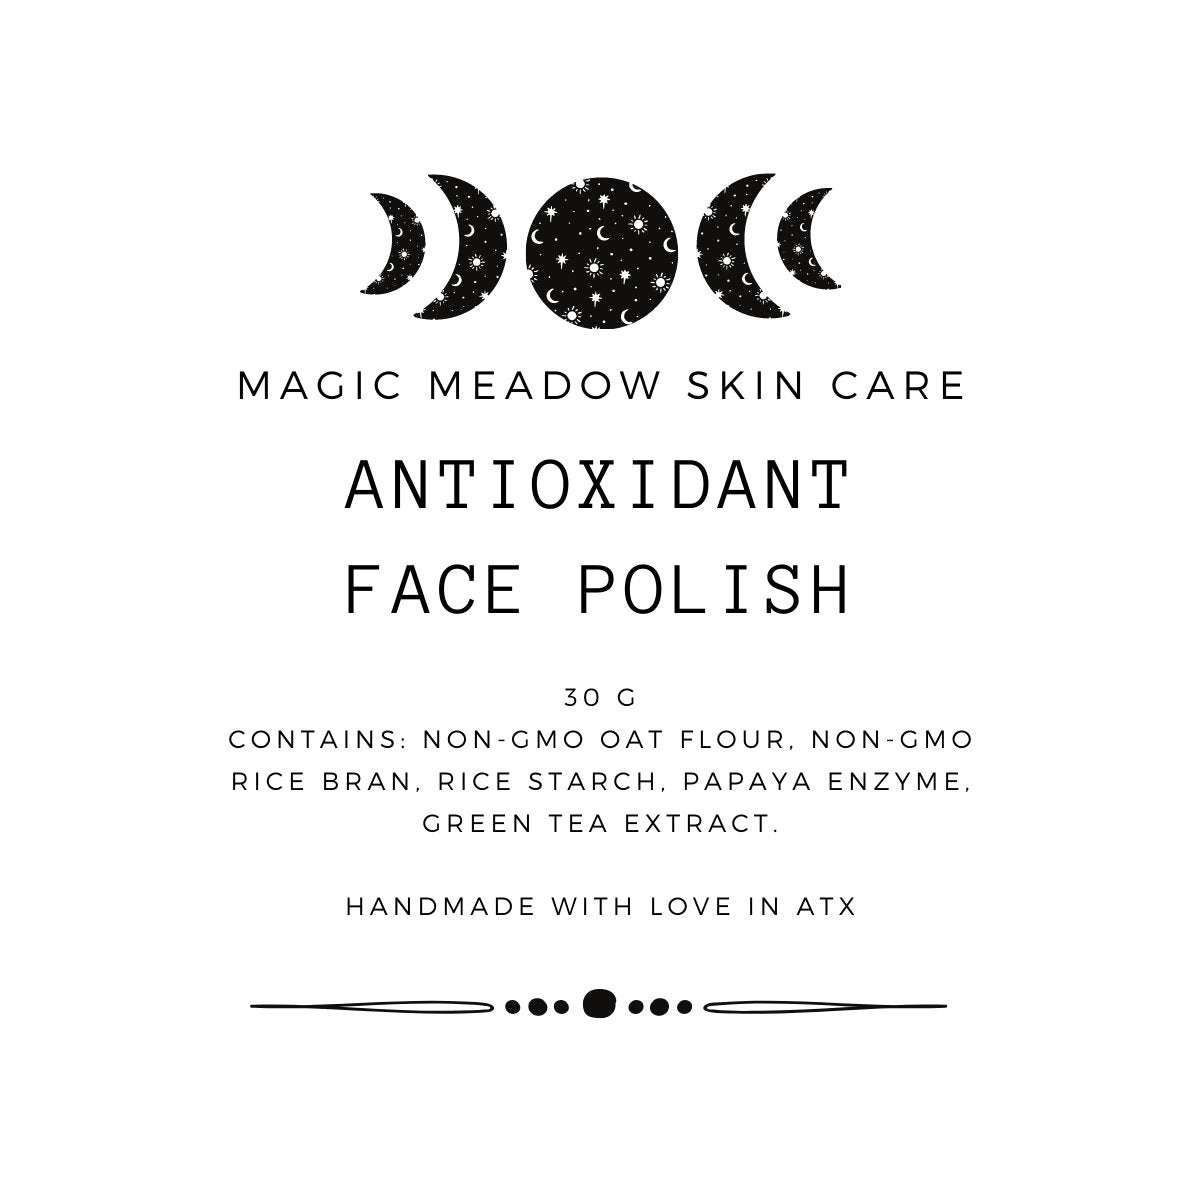 Antioxidant Face Polish